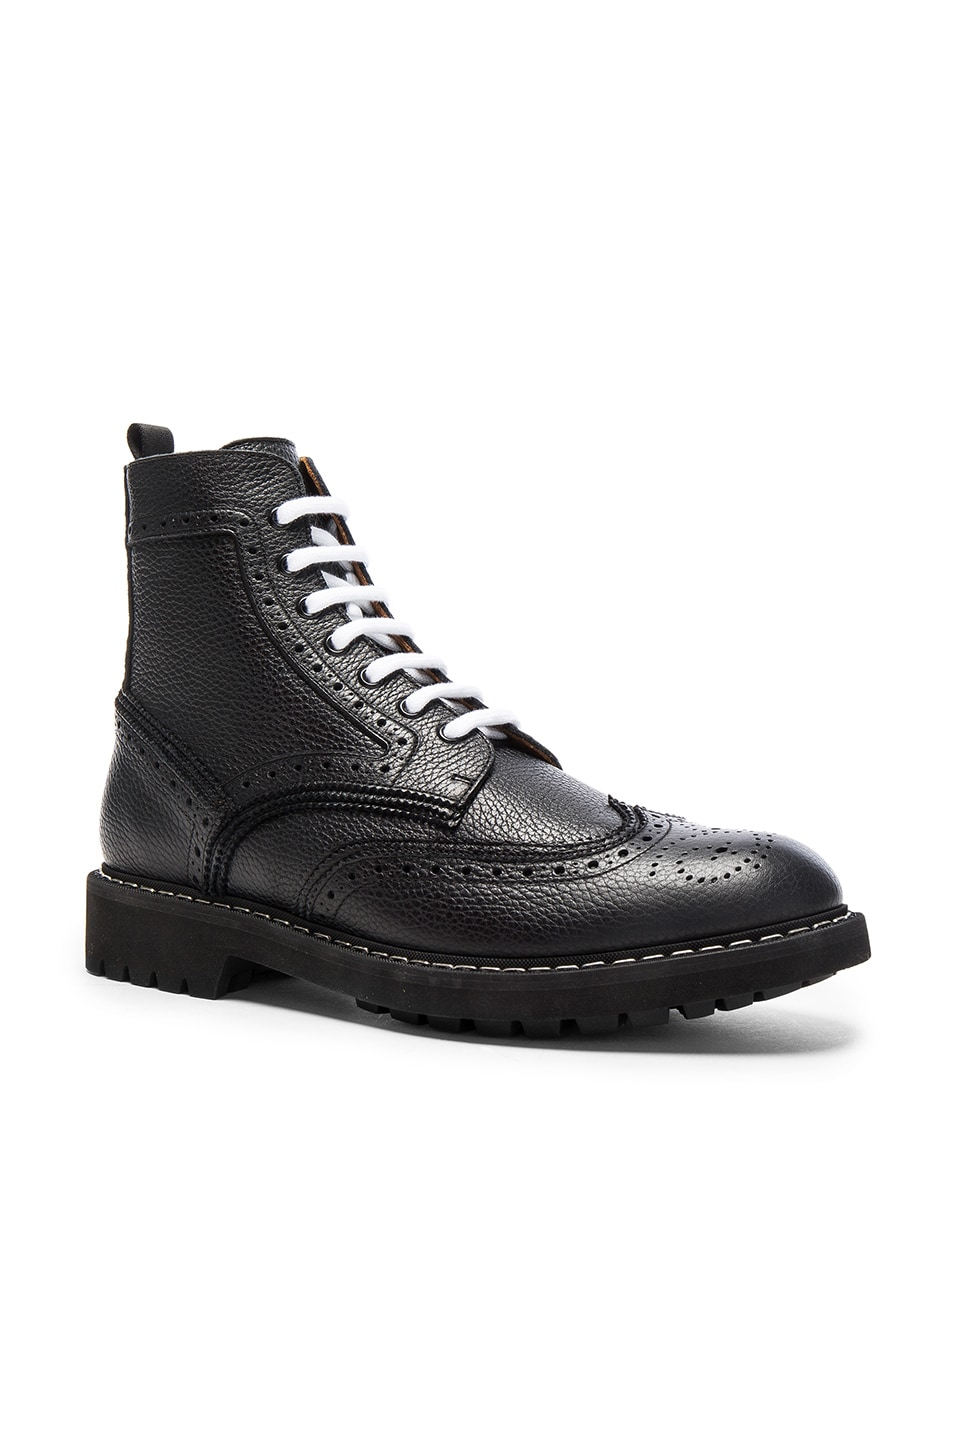 Givenchy Leather Wingtip Boots In Black  10d2a3c3de12